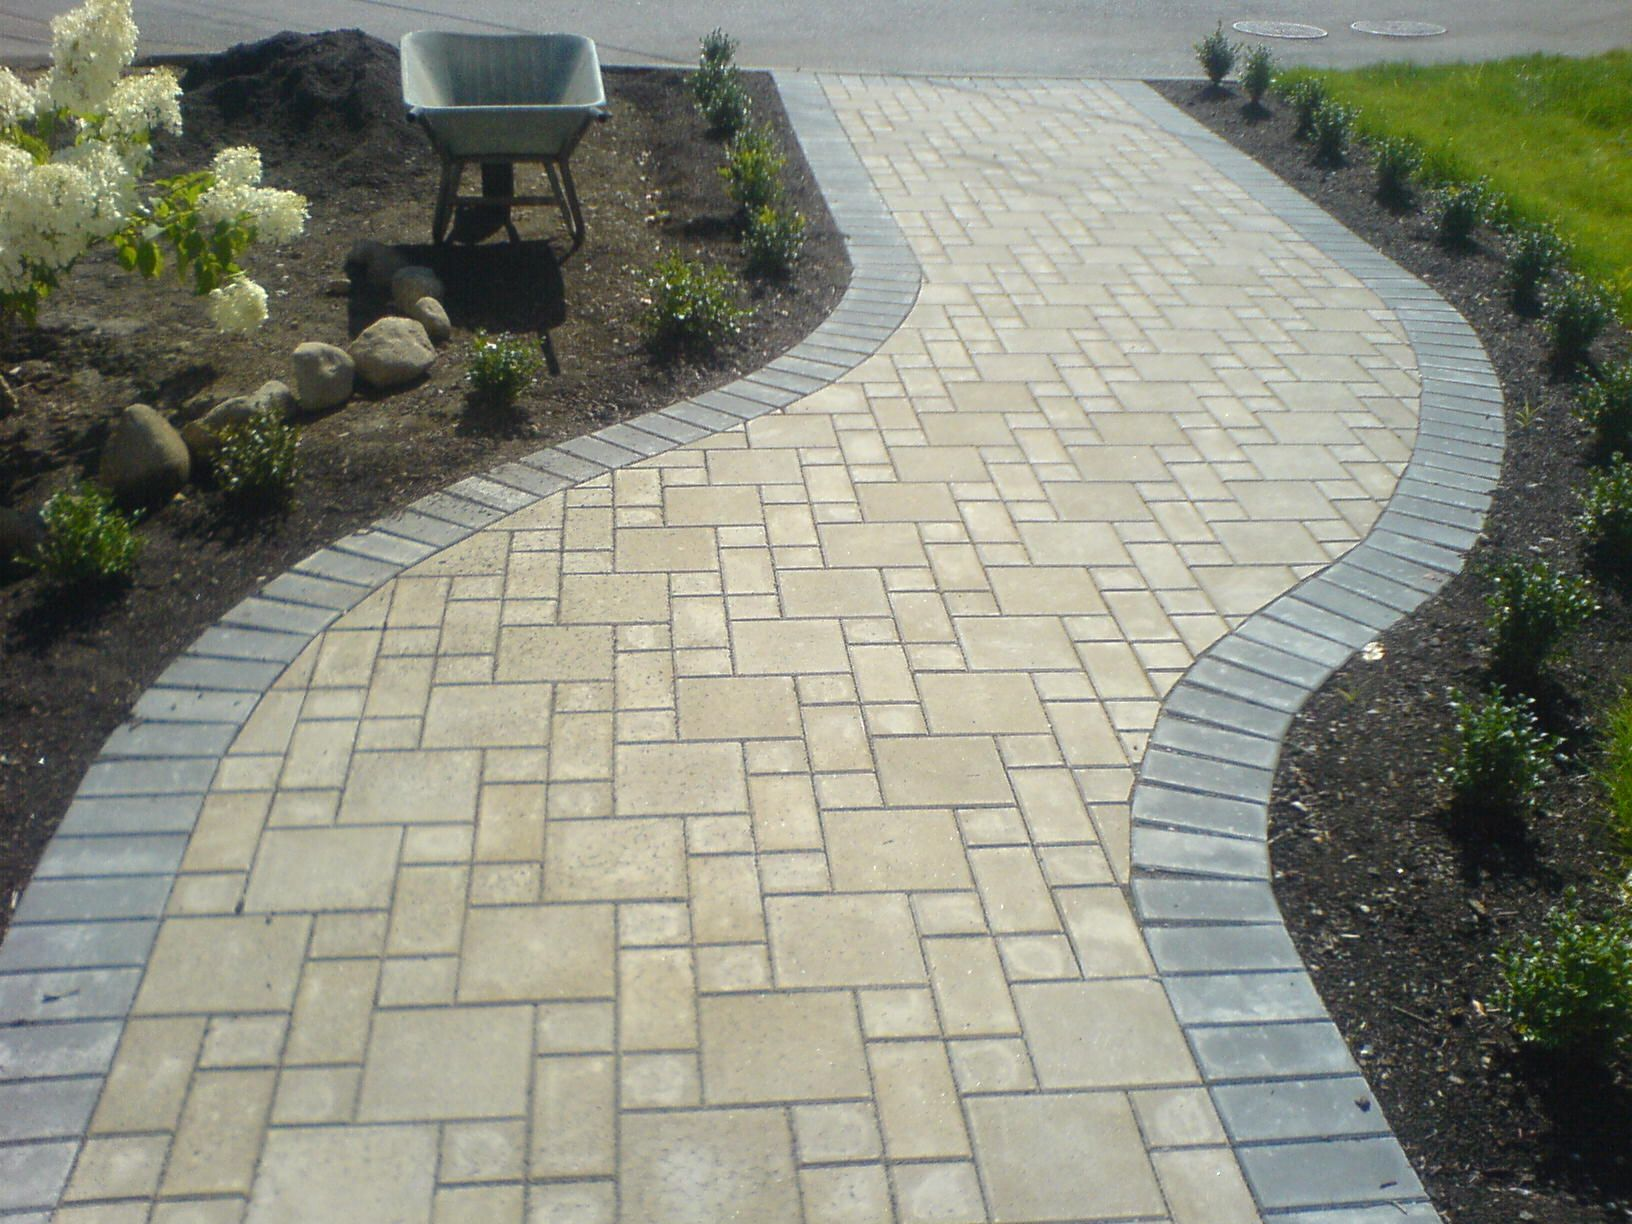 Brick Paver Walkway Designs Call 919 3010176 For Free Quote Httpwww.raleighpavingco